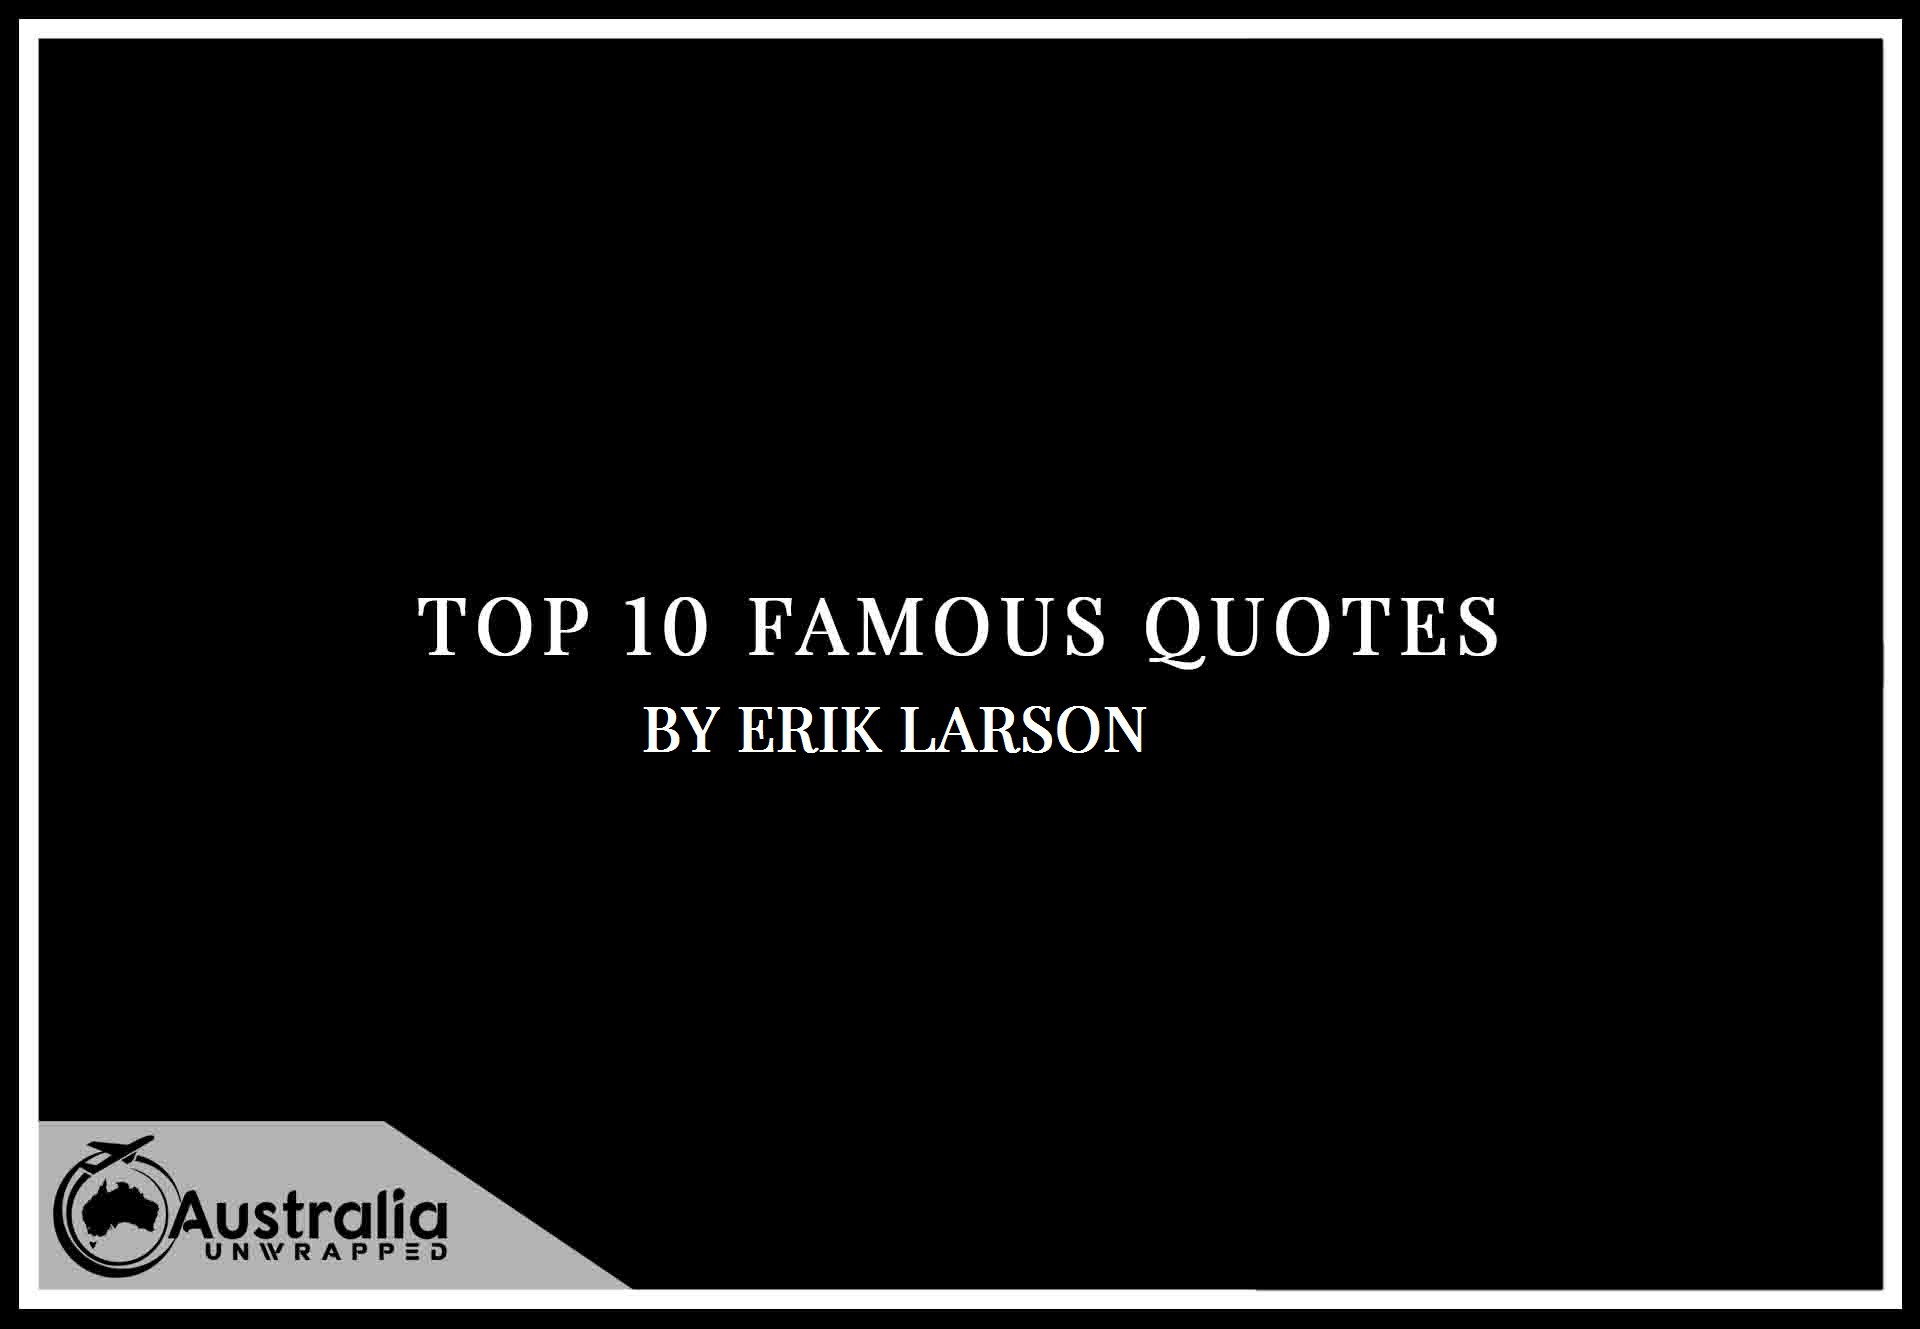 Erik Larson's Top 10 Popular and Famous Quotes